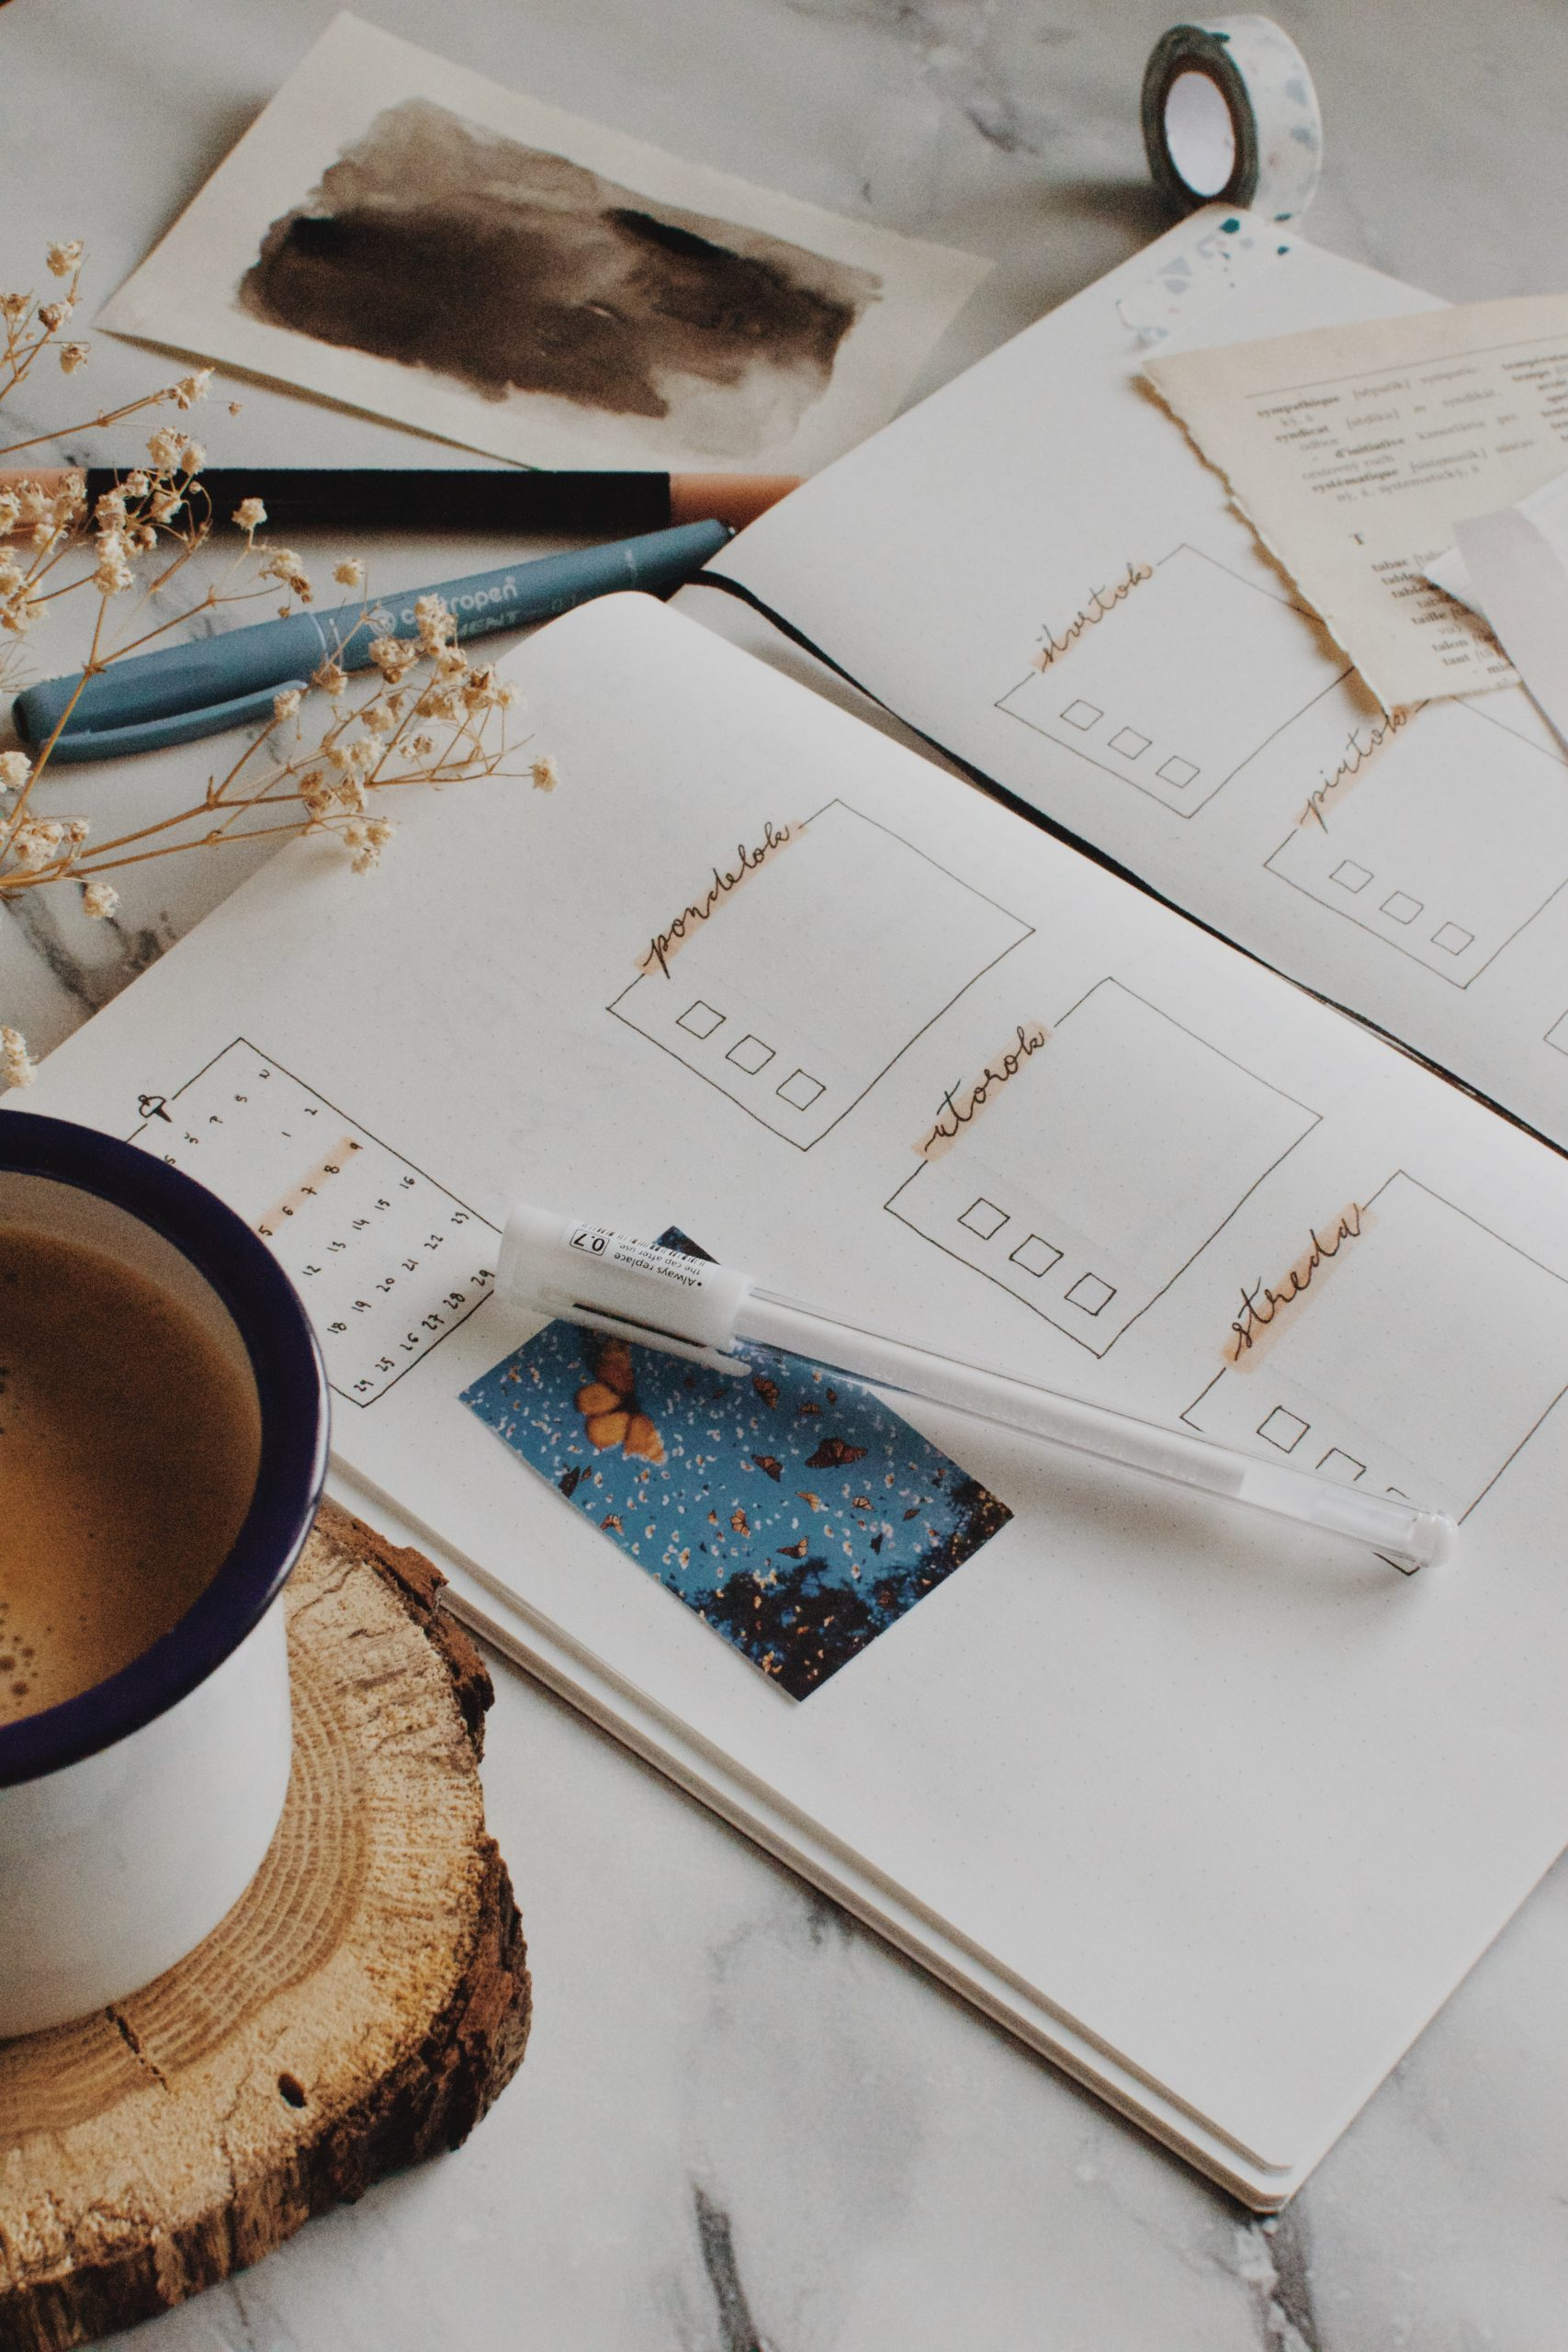 Morning to do list and journalling